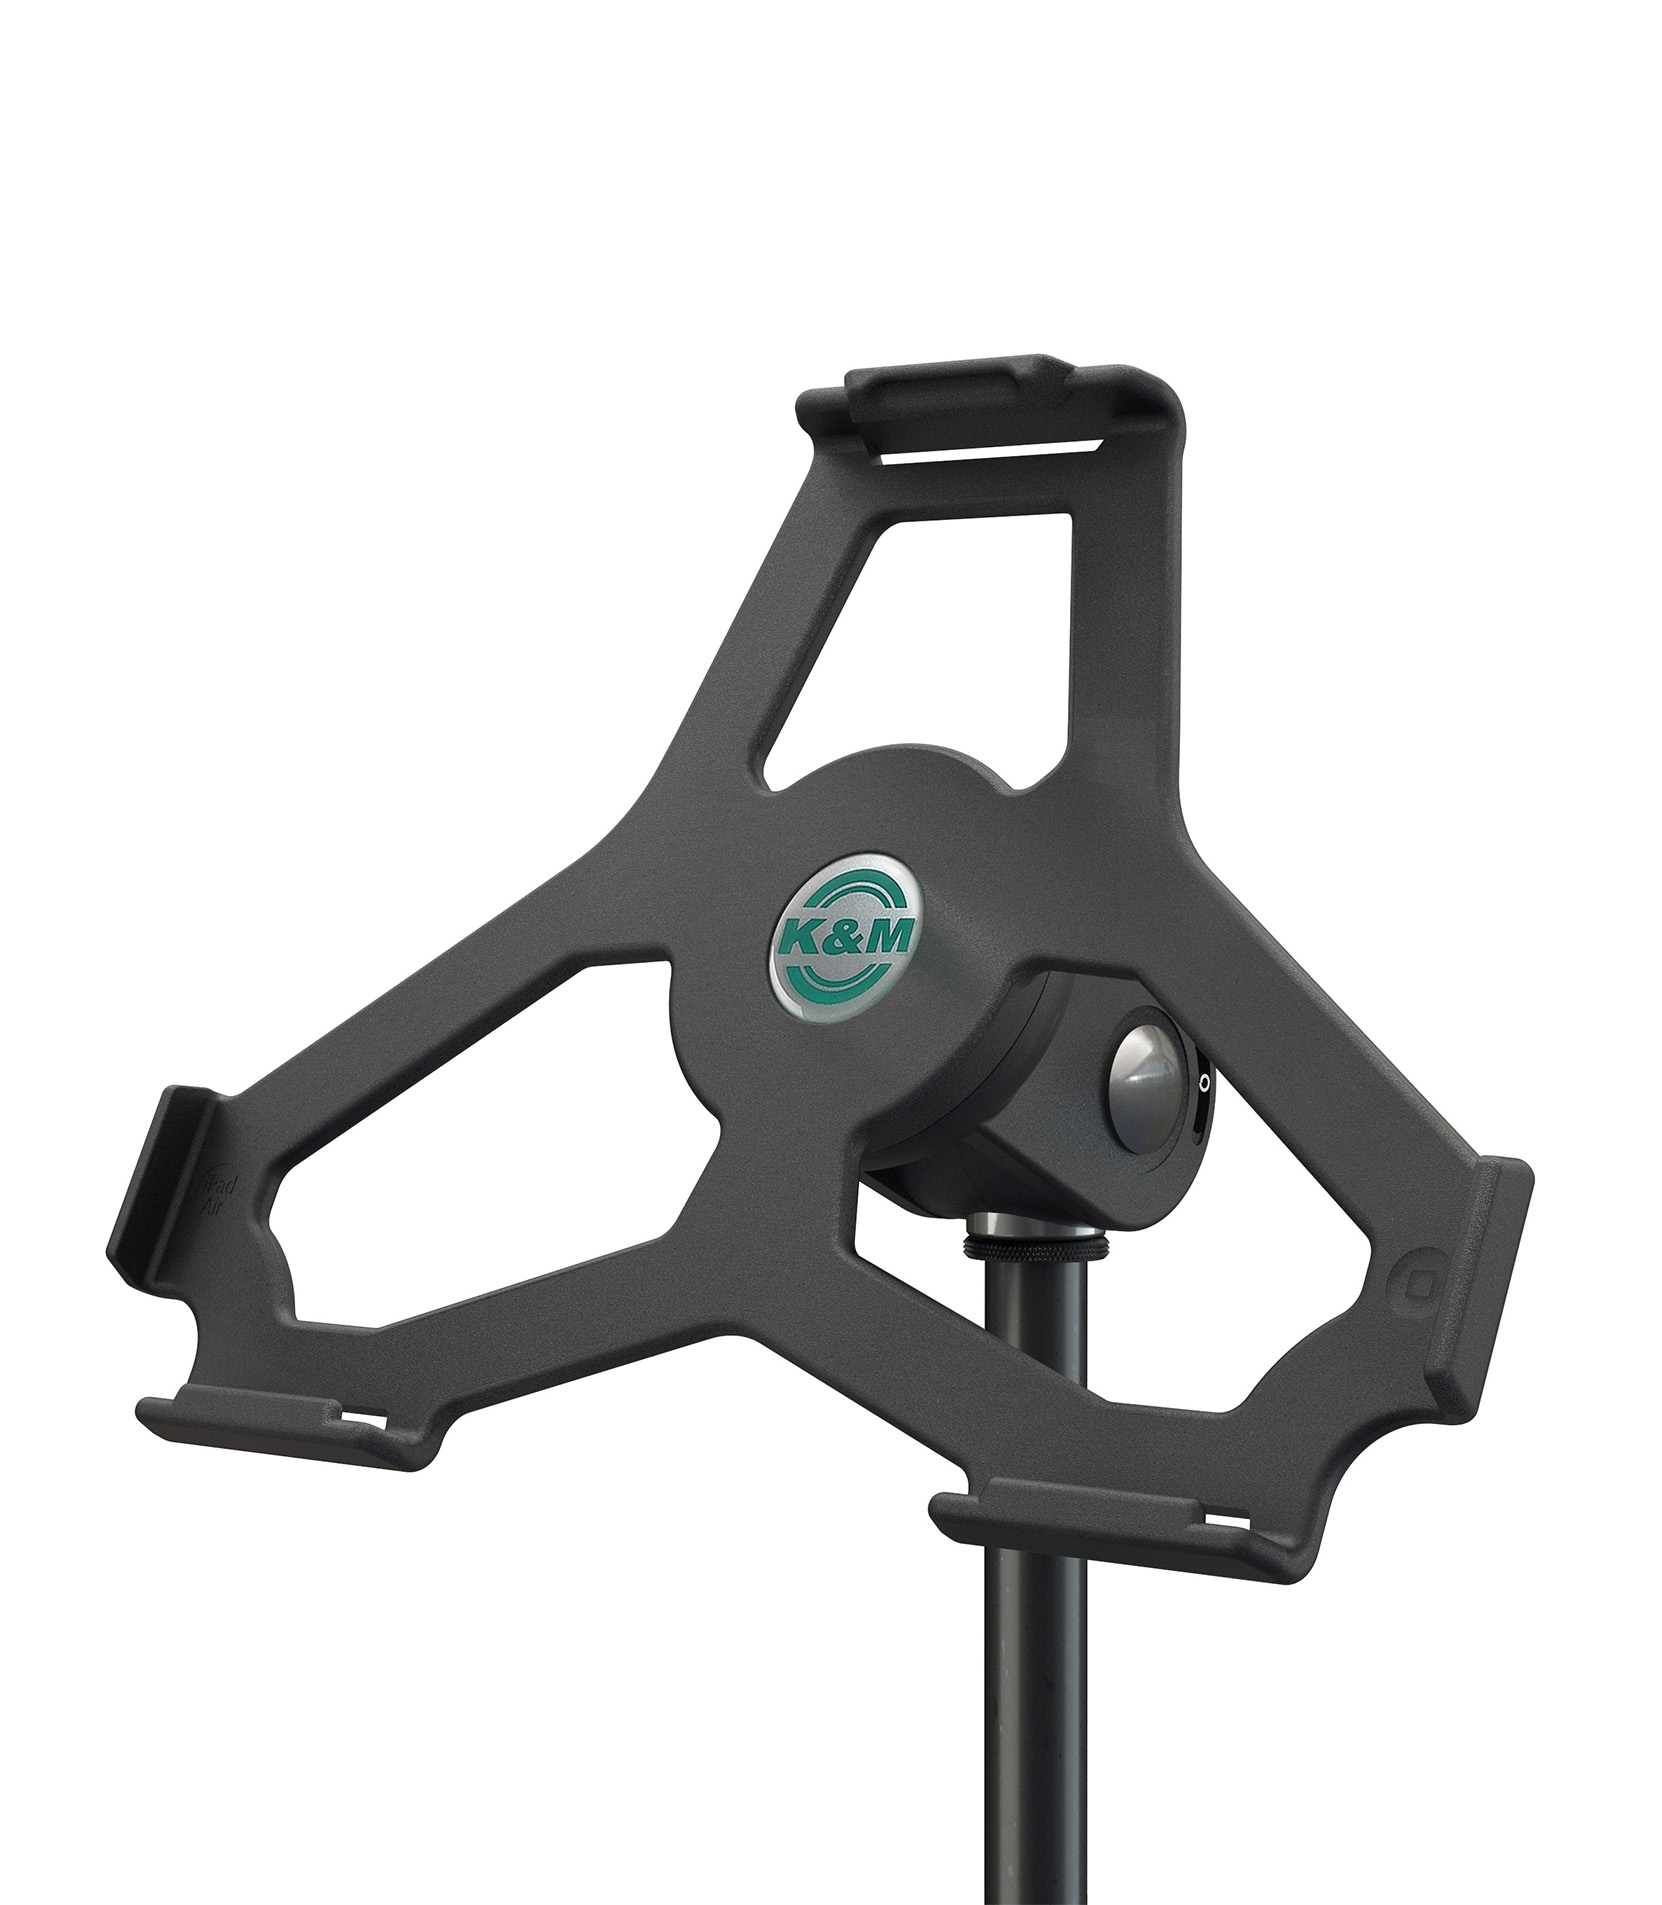 19717 300 55 iPad Air holder